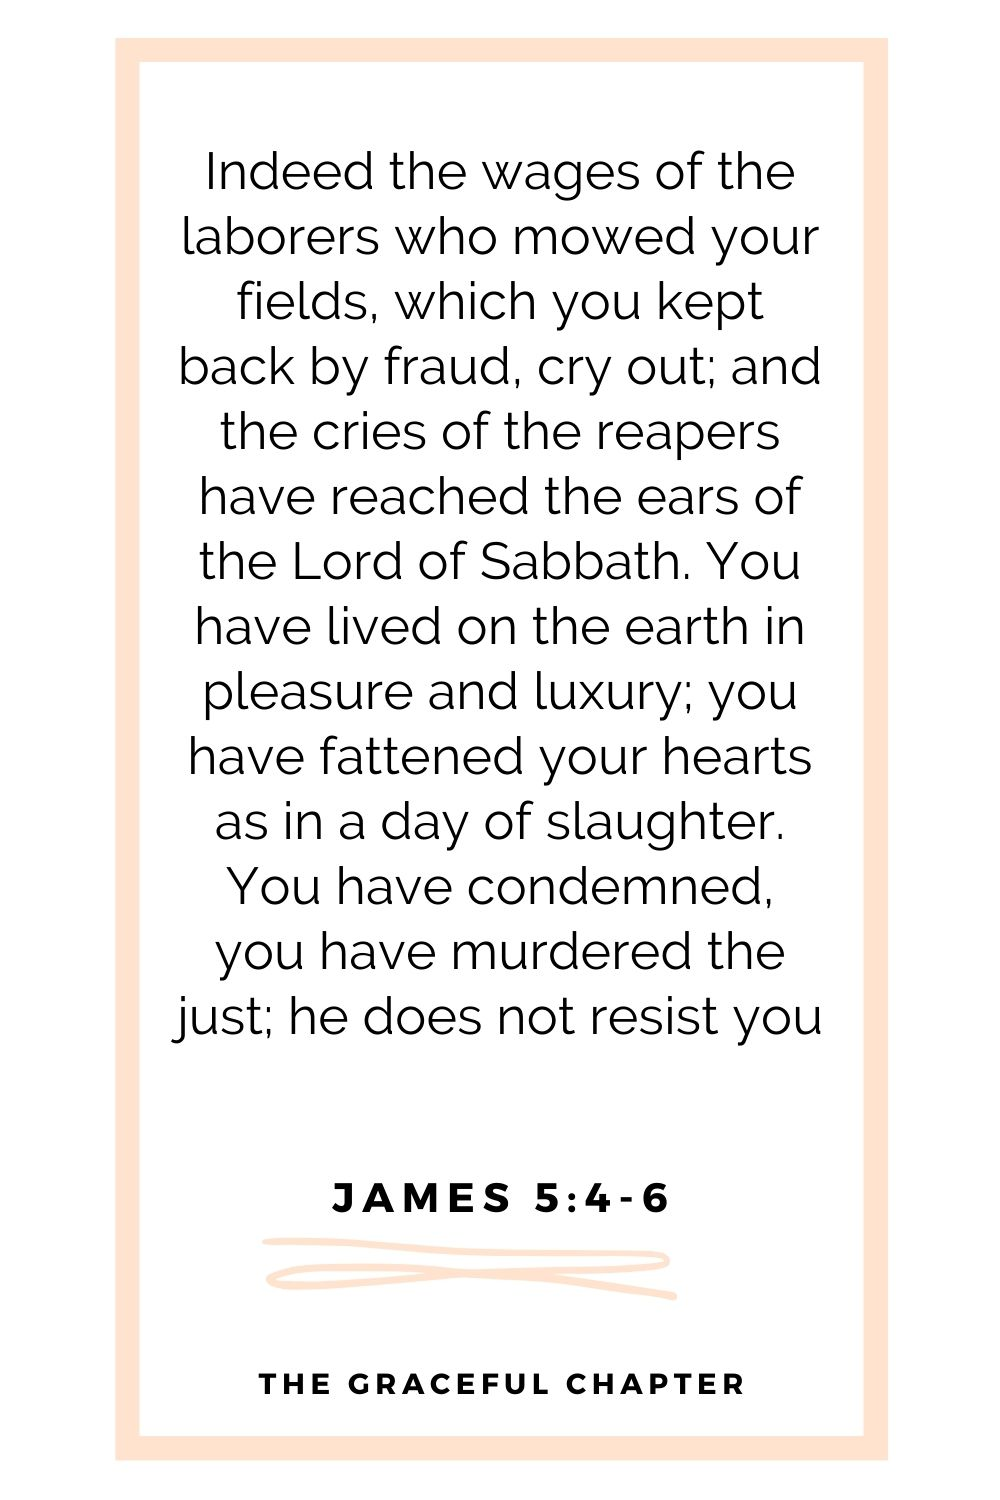 Indeed the wages of the laborers who mowed your fields, which you kept back by fraud, cry out; and the cries of the reapers have reached the ears of the Lord of Sabbath. You have lived on the earth in pleasure and luxury; you have fattened your hearts as in a day of slaughter. You have condemned, you have murdered the just; he does not resist you James 5:4-6